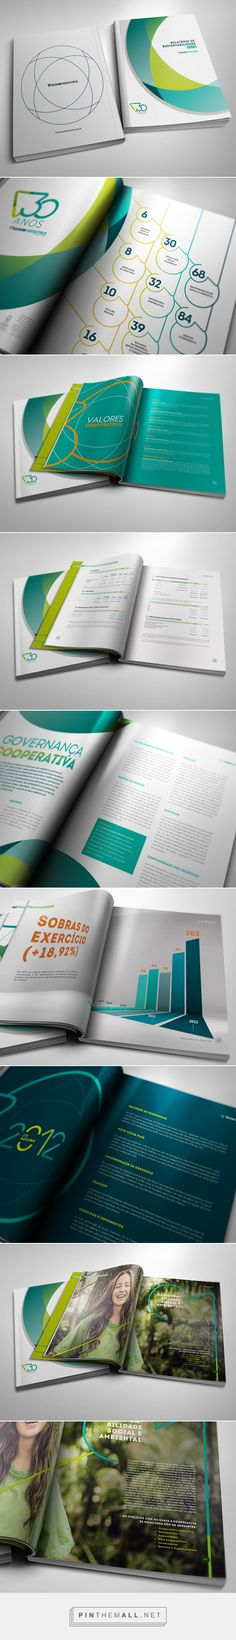 Sicoob Credicitrus Annual Report 2012 on Behance - created via http://pinthemall.net